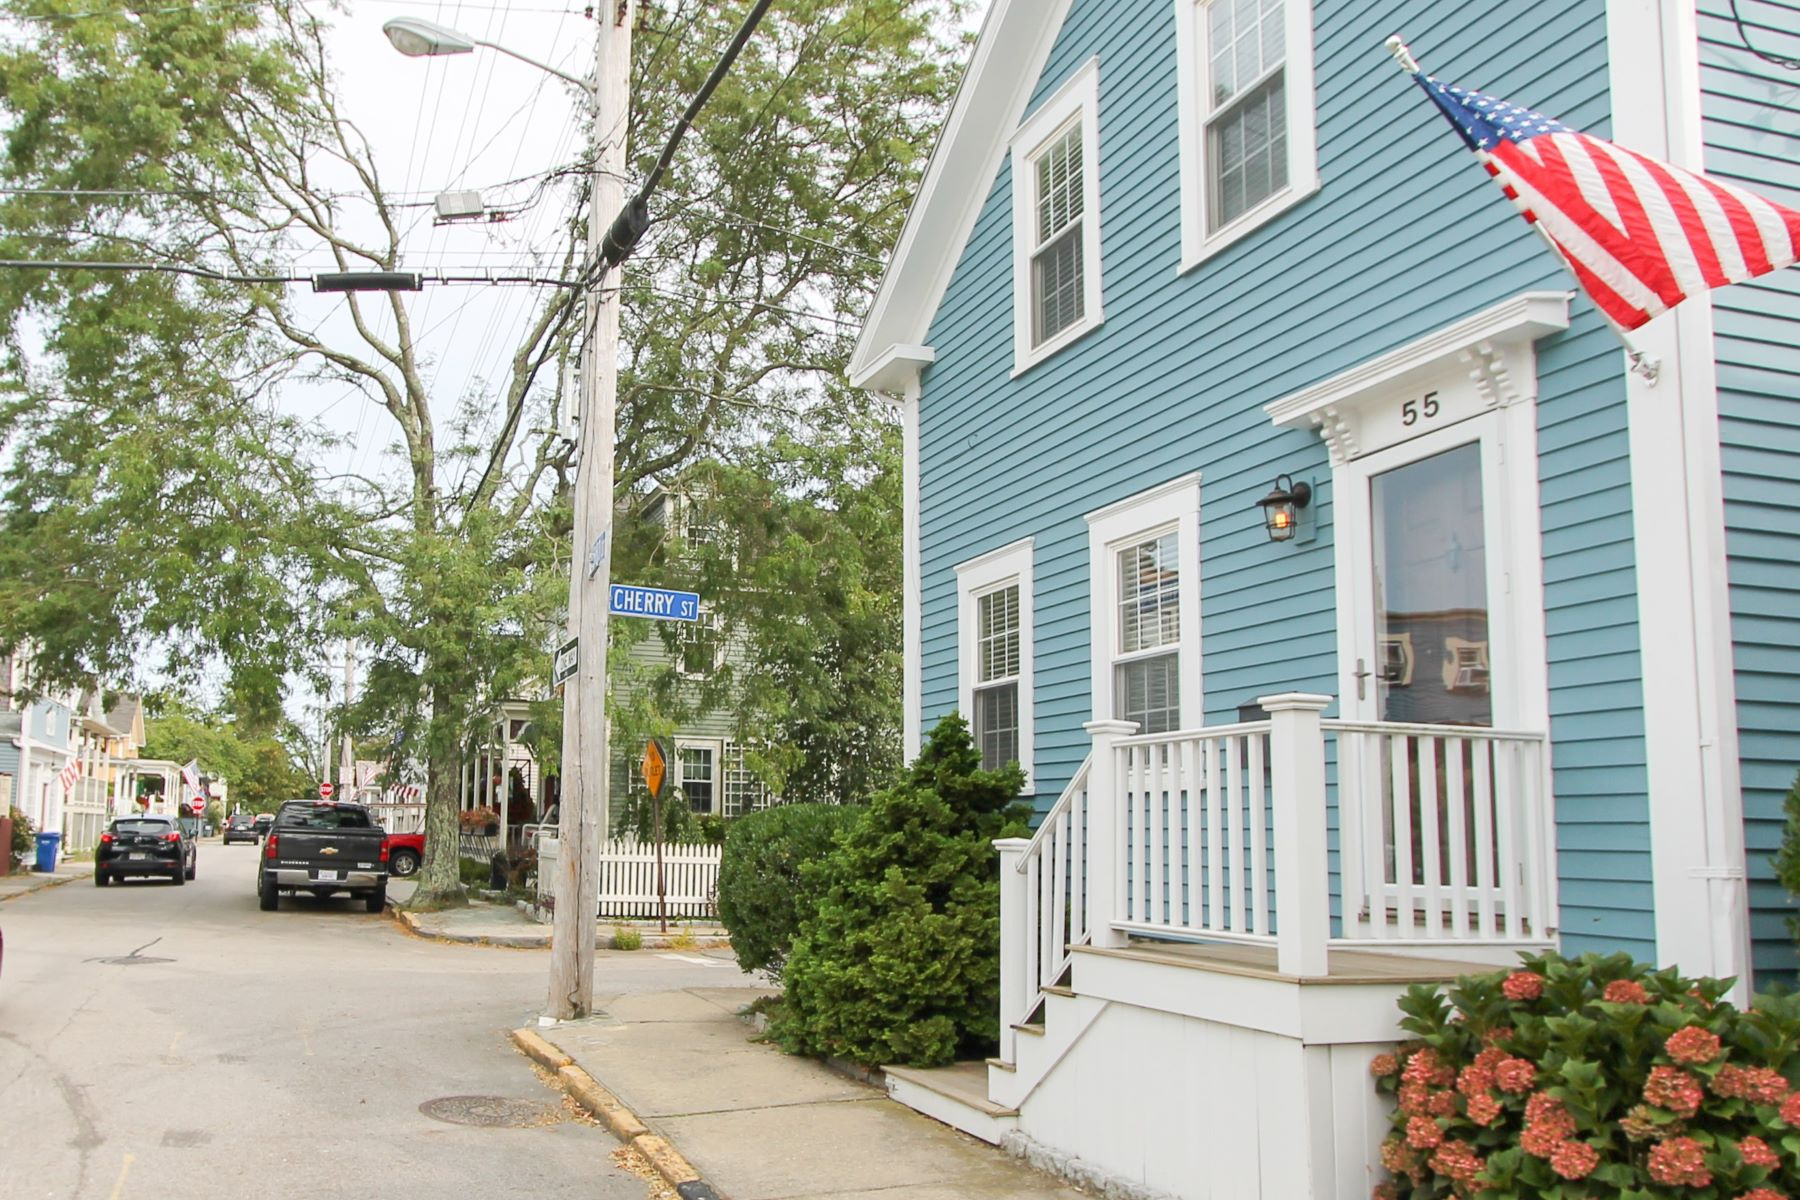 Single Family Homes for Sale at Dalton E. Young House 55 Third Street Newport, Rhode Island 02840 United States